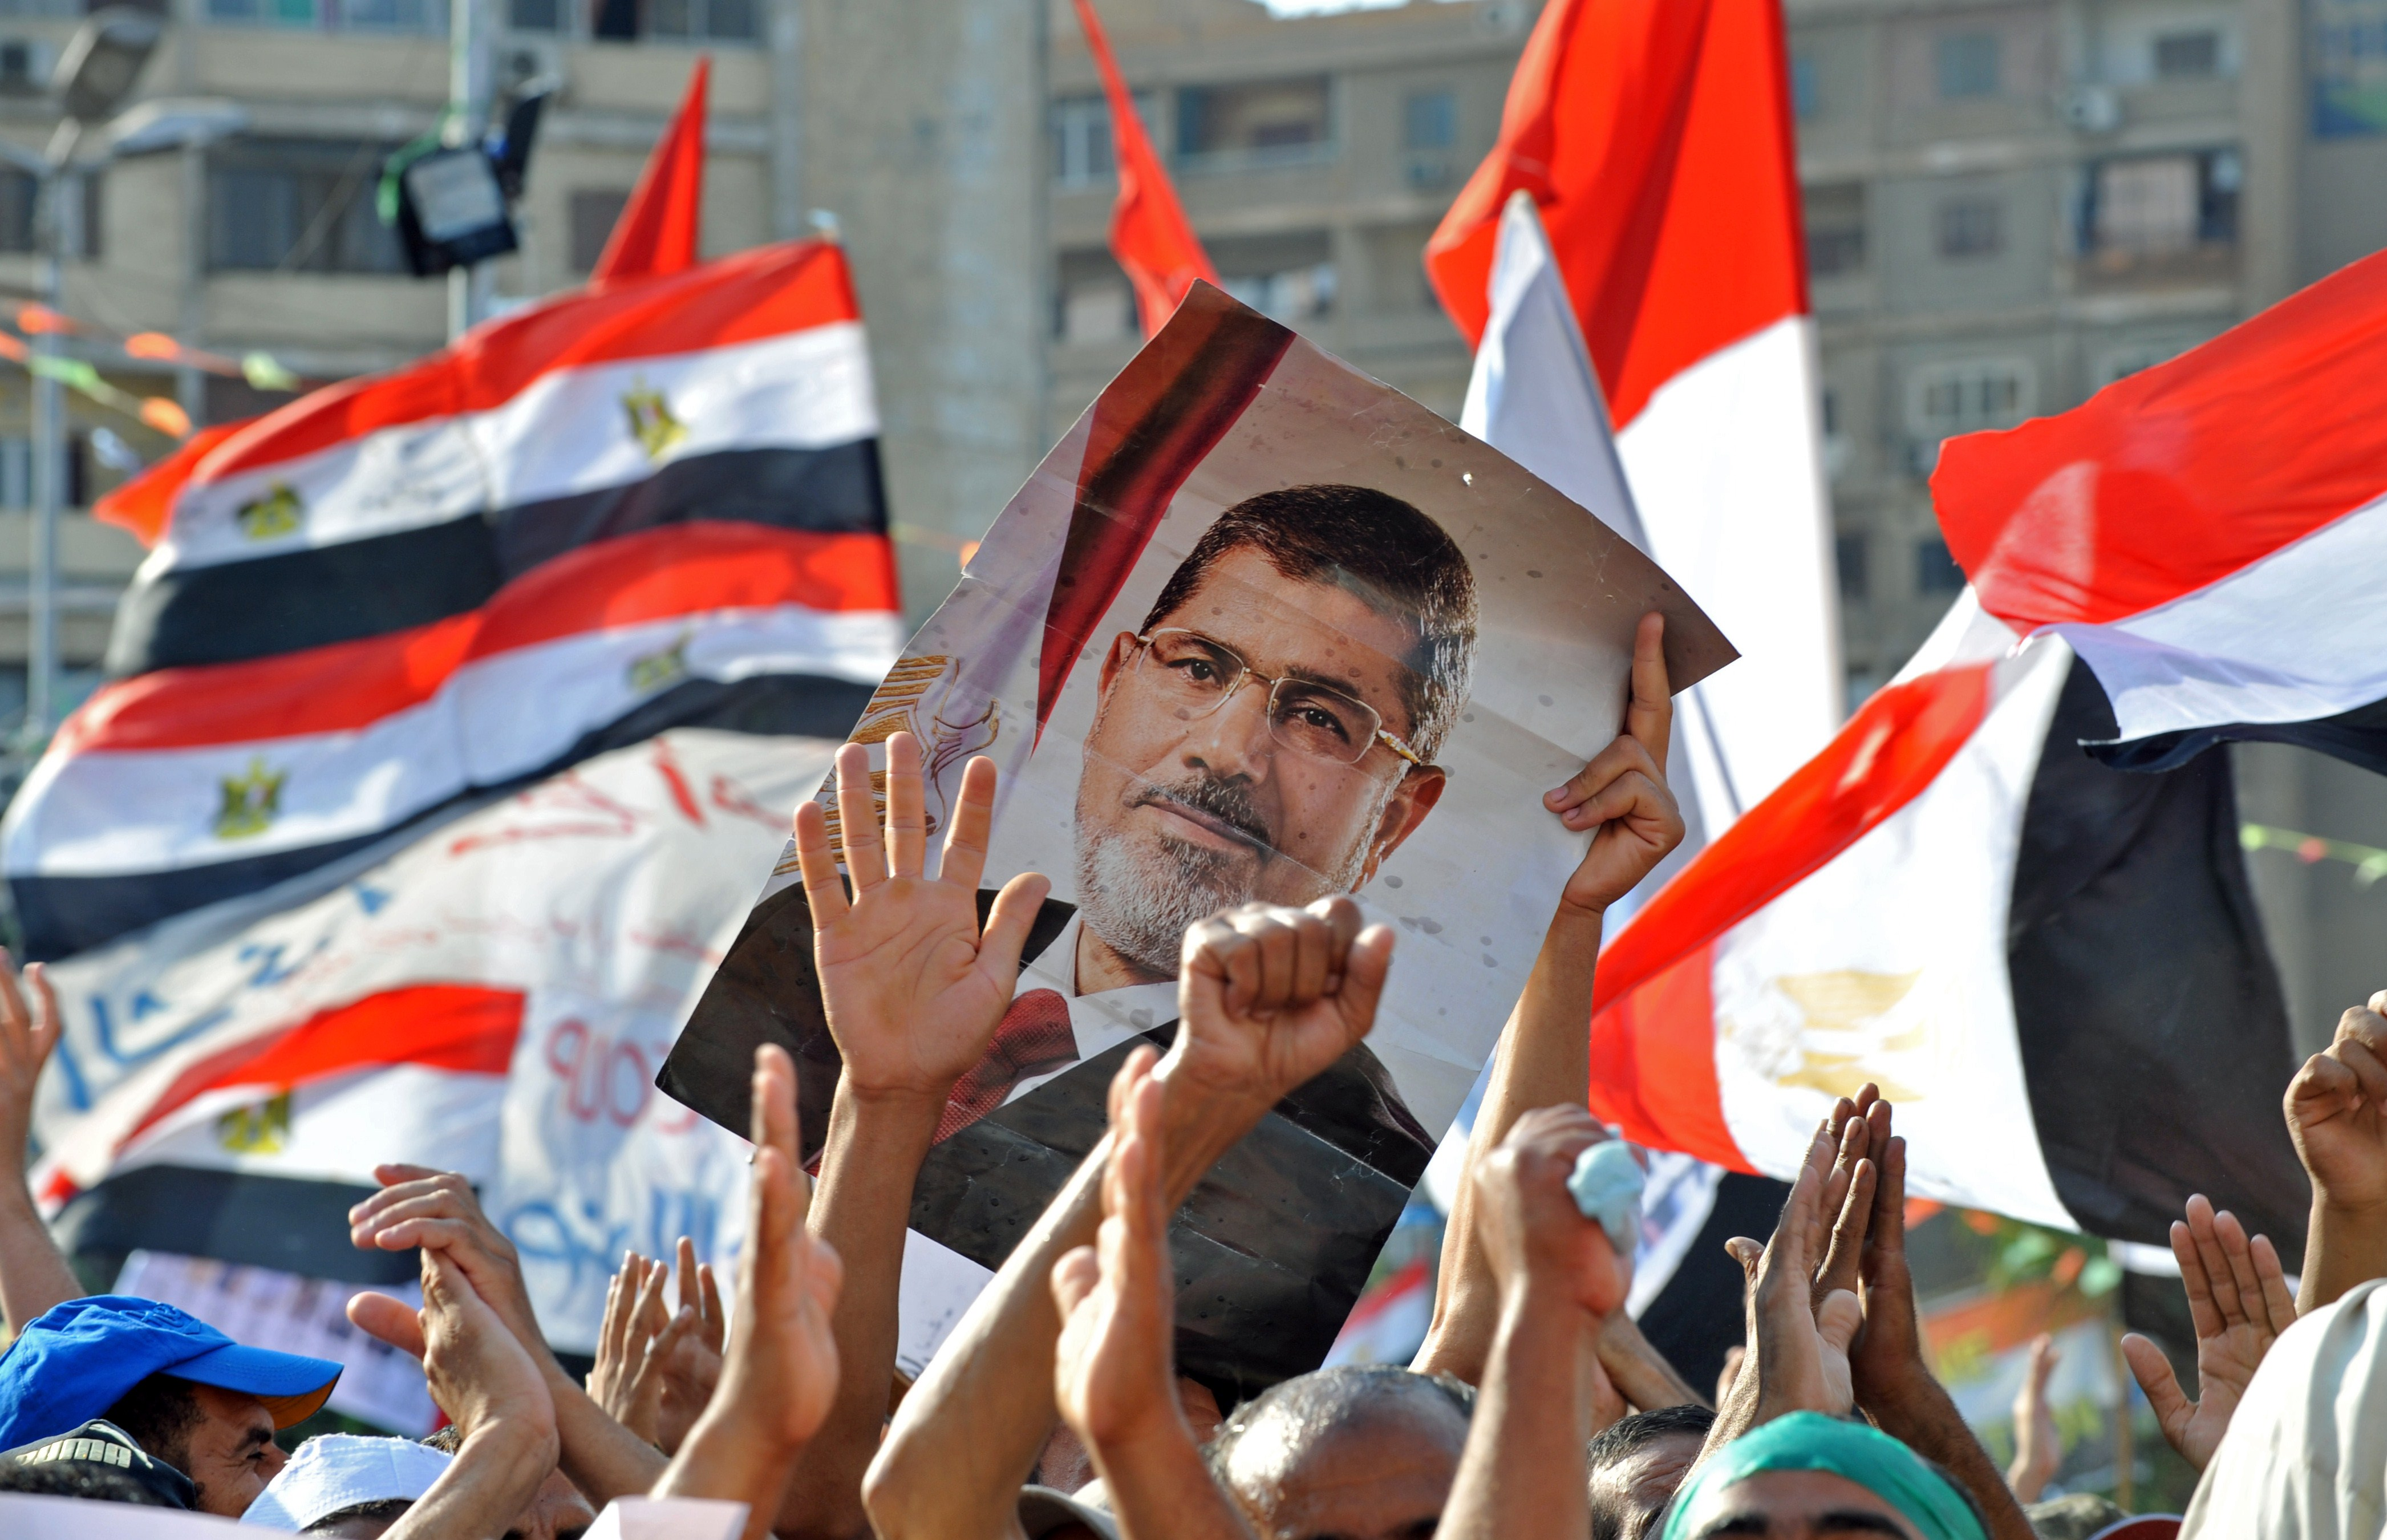 Egyptian supporters of deposed president Mohamed Morsi hold up his portrait and wave their national flag, as they continue to hold a sit in outside Cairo's Rabaa al-Adawiya mosque on July 24, 2013.  (AFP File Photo)